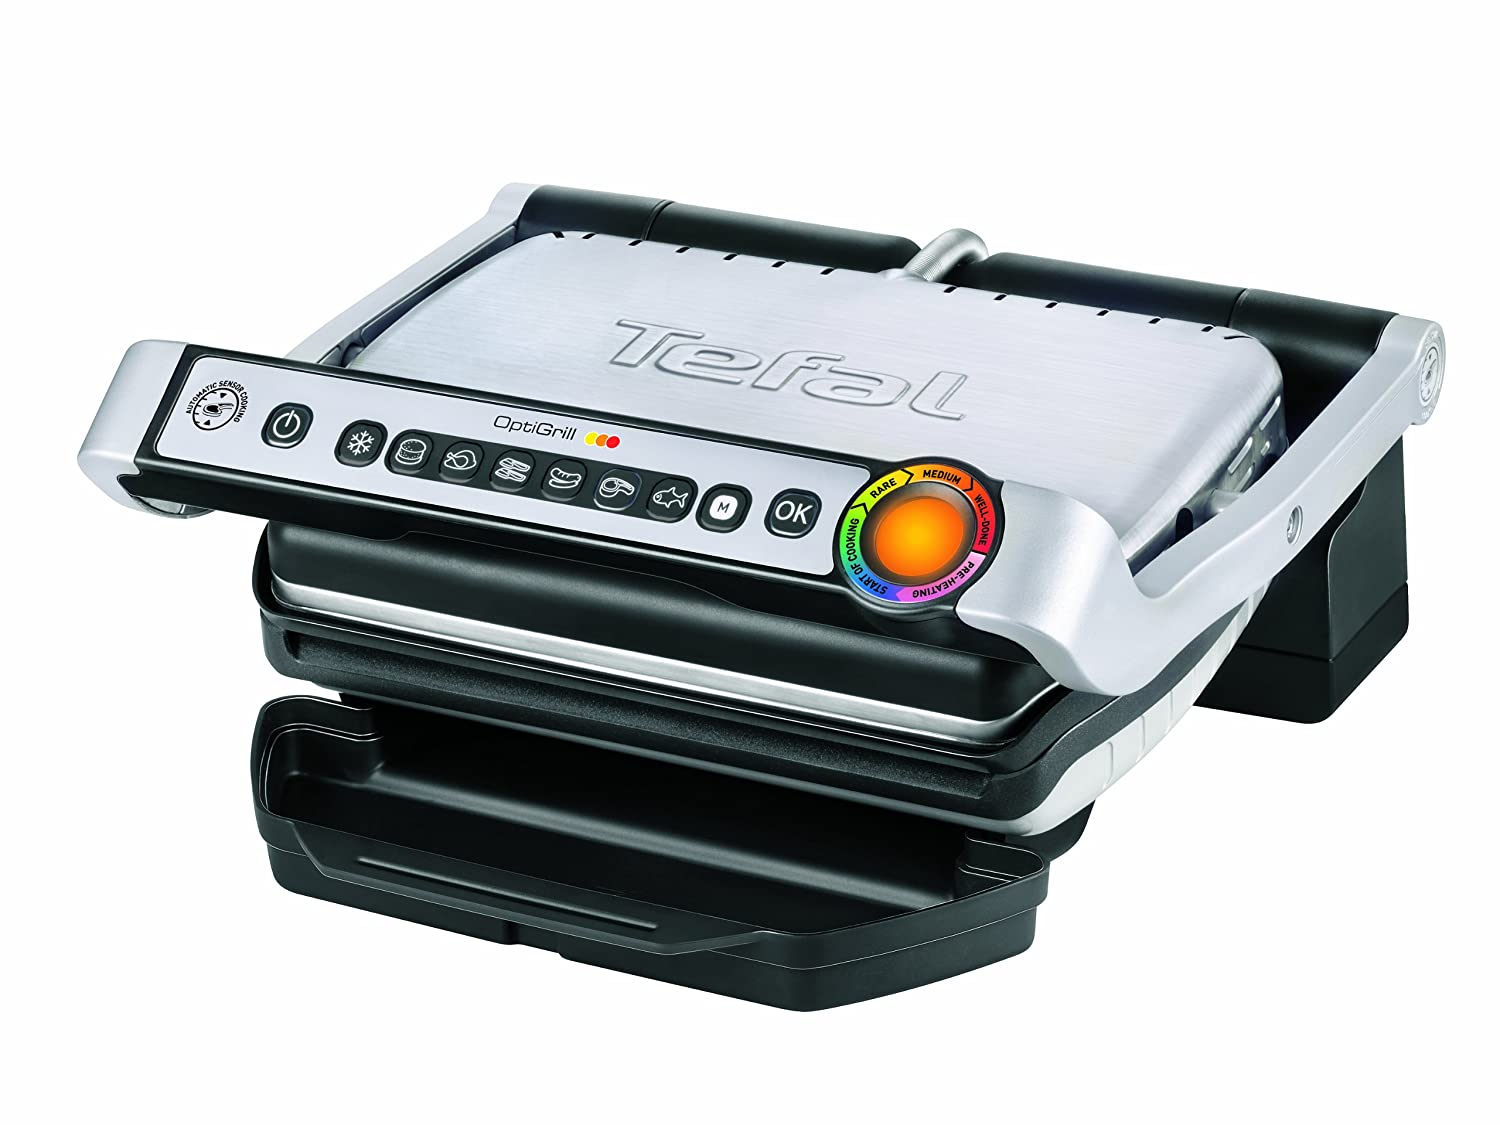 Tefal OptiGrill with Automatic Thickness and Temperature Measurement, 2000 W - Silver GC701D40